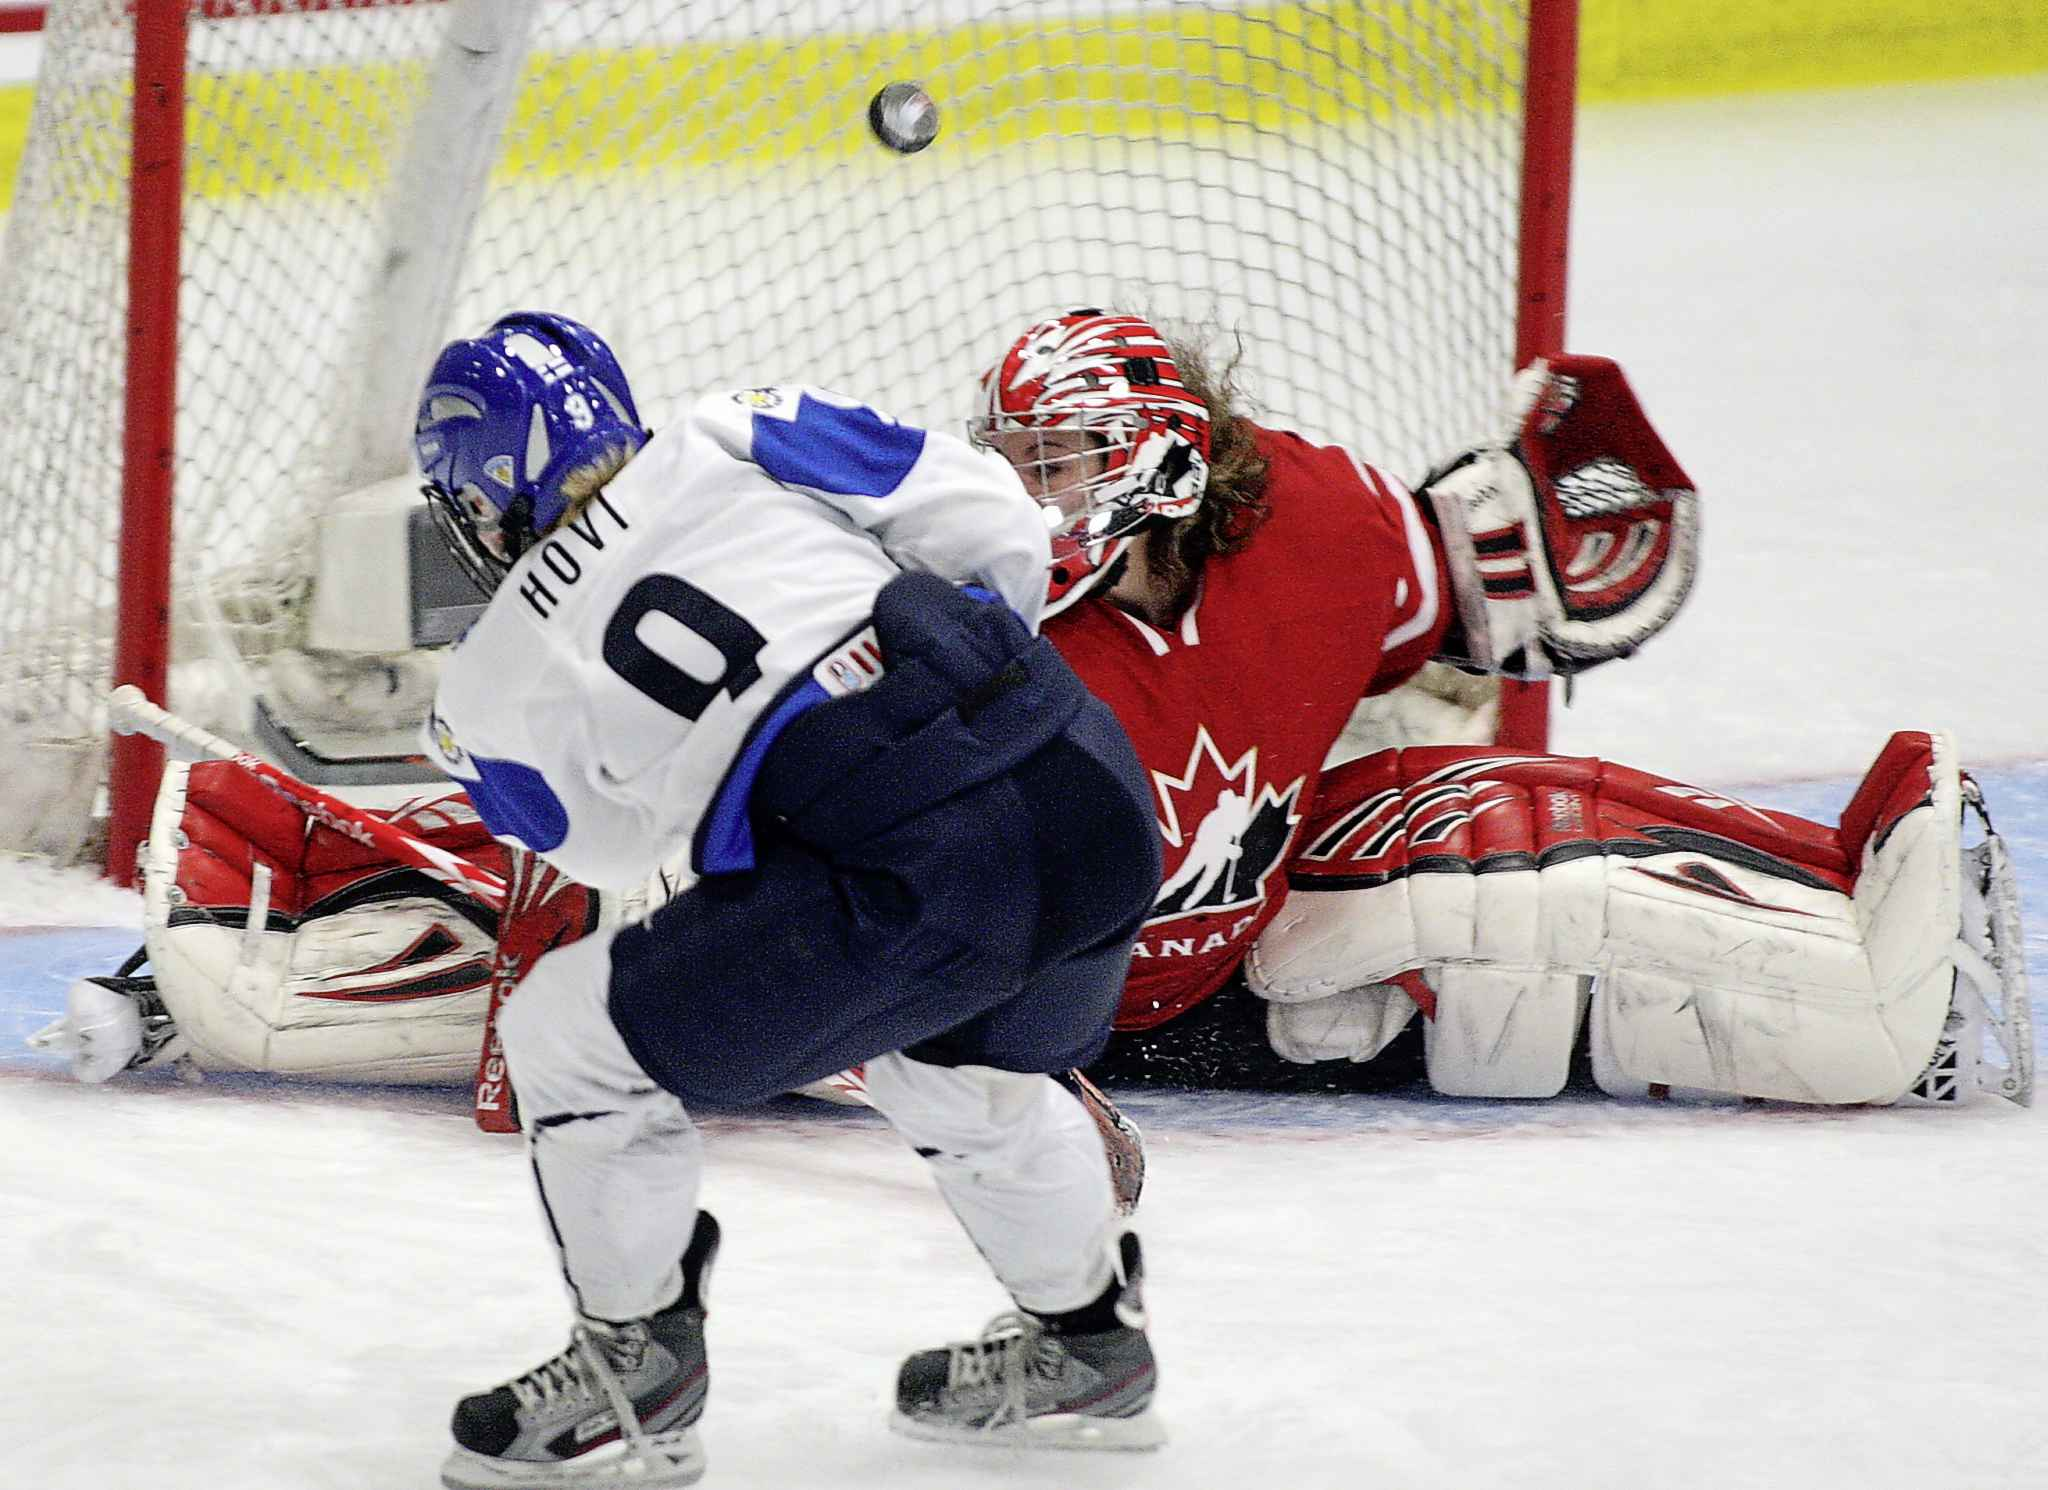 Hovi scores against Team Canada's Shannon Szabados during the World Women's Ice Hockey Championships in 2012.